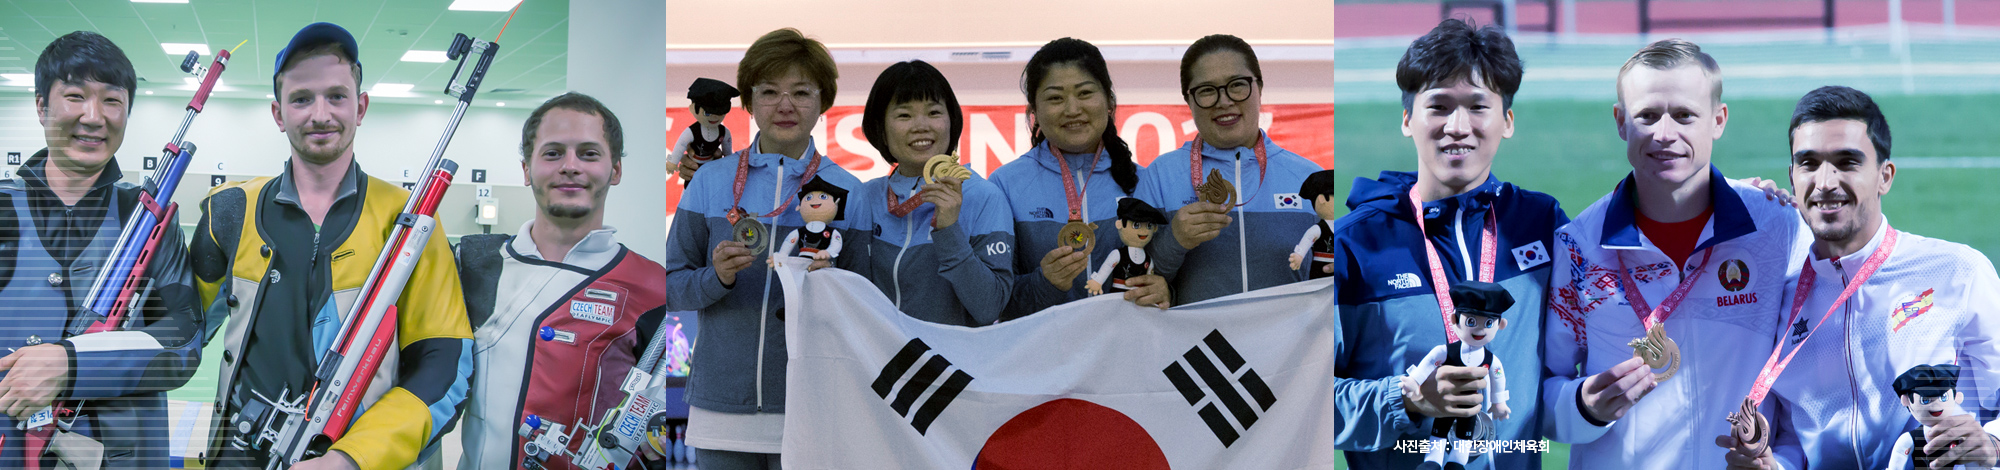 KOREA DEAF SPORTS FEDERATION